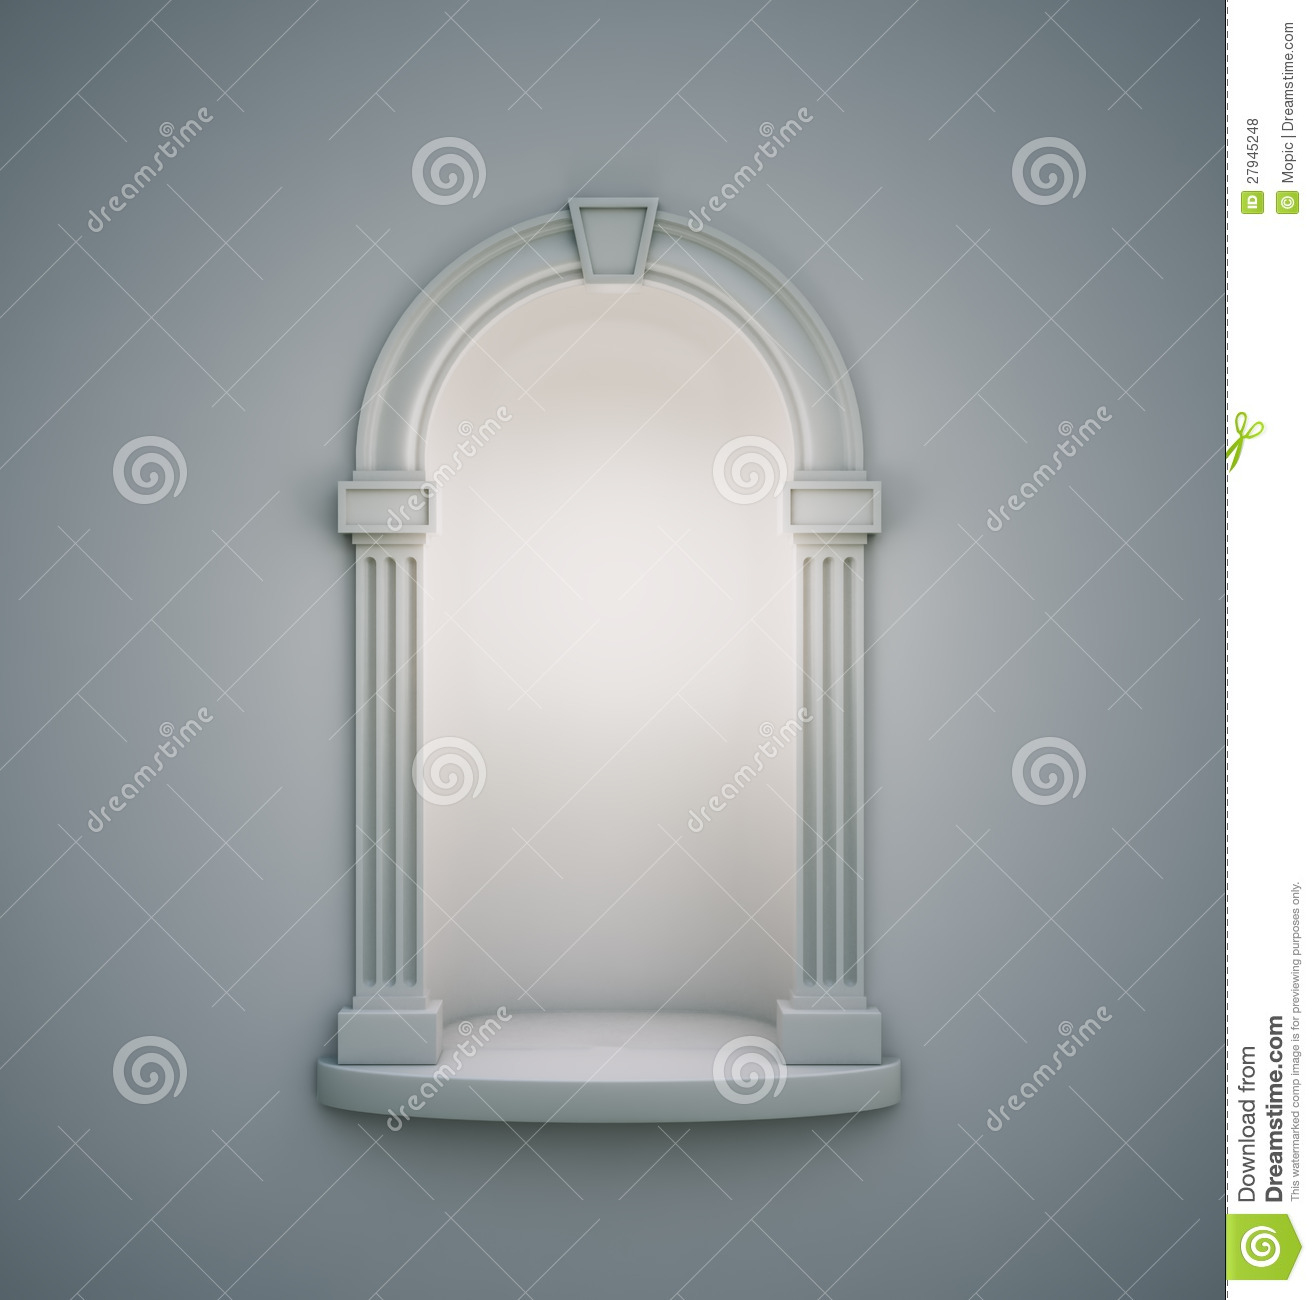 Classical Wall Niche Royalty Free Stock Photos.